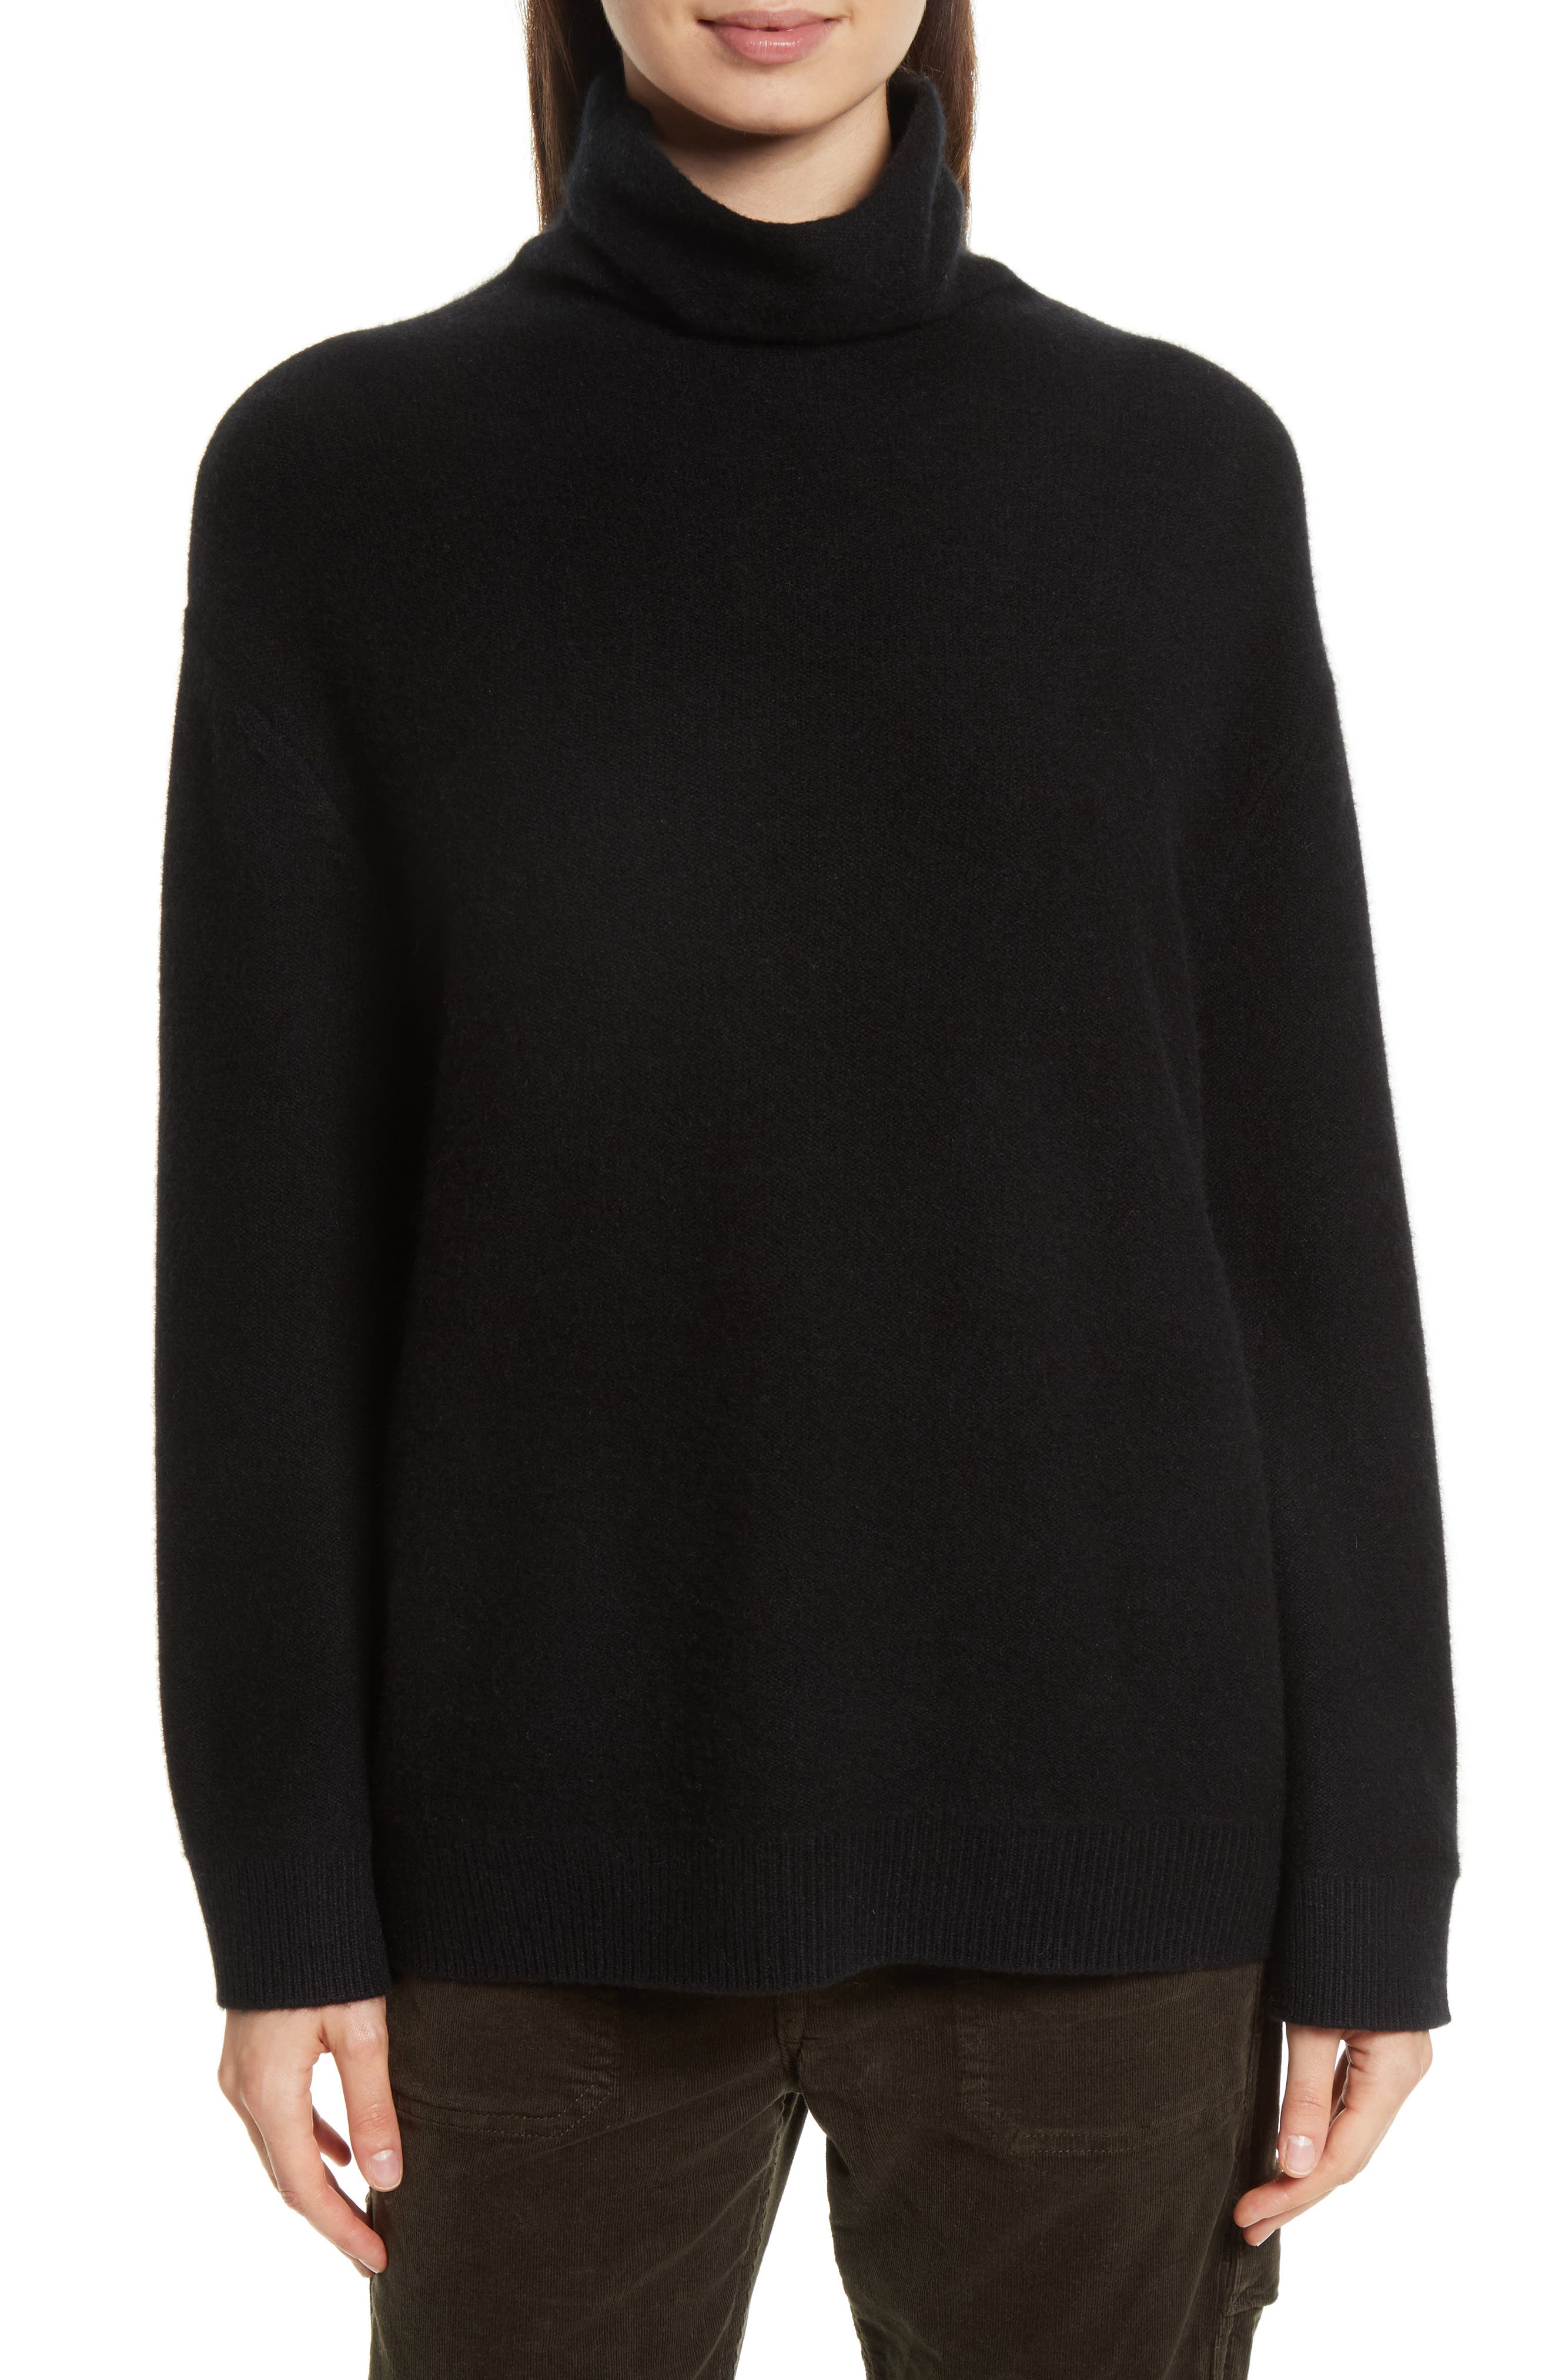 Boxy Mock Neck Cashmere Sweater,                             Main thumbnail 1, color,                             001